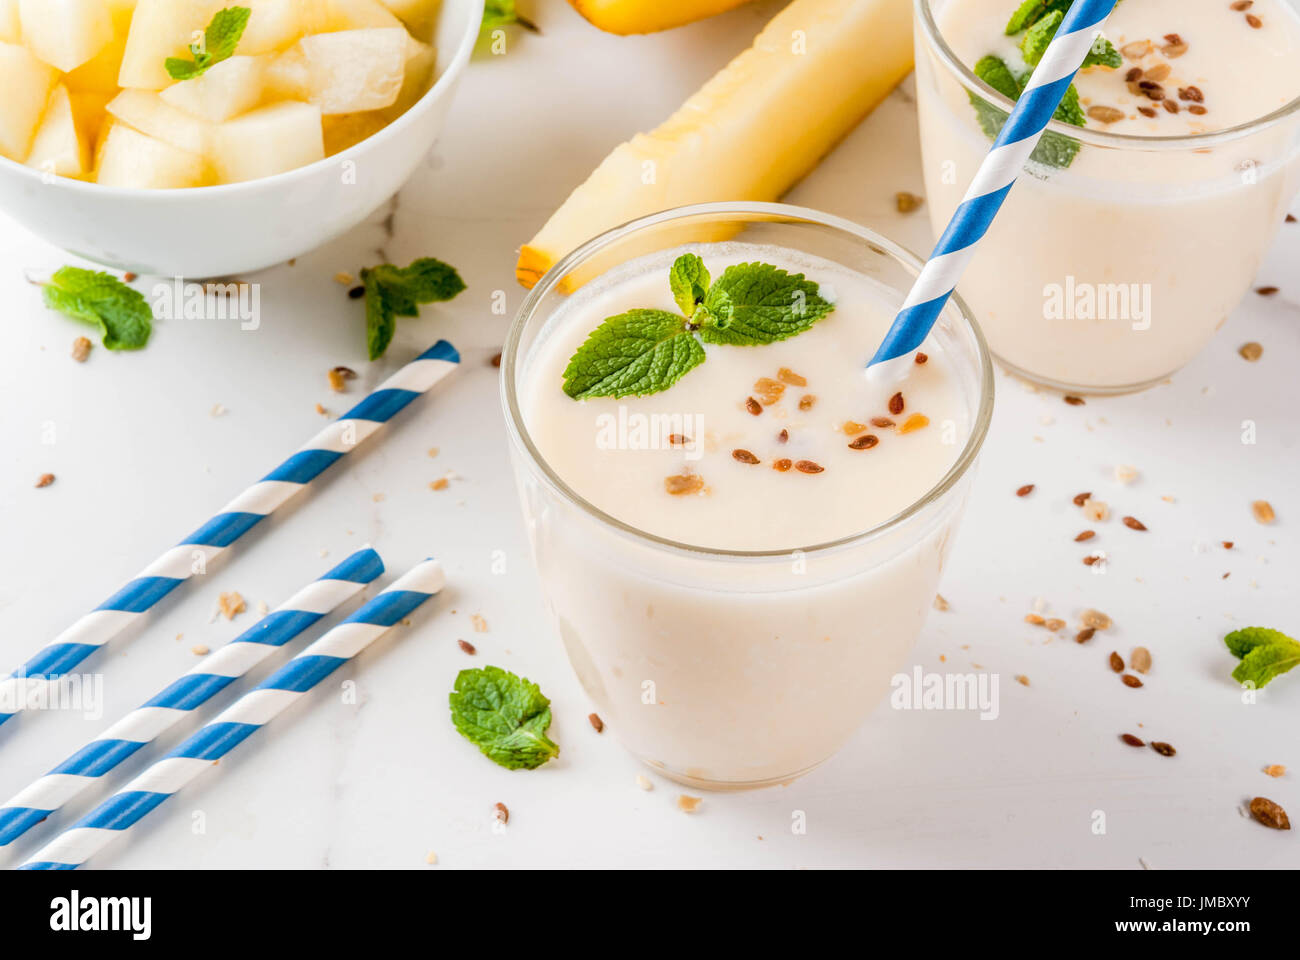 Striped straws stock photos striped straws stock images alamy - Refreshing dishes yogurt try summer ...